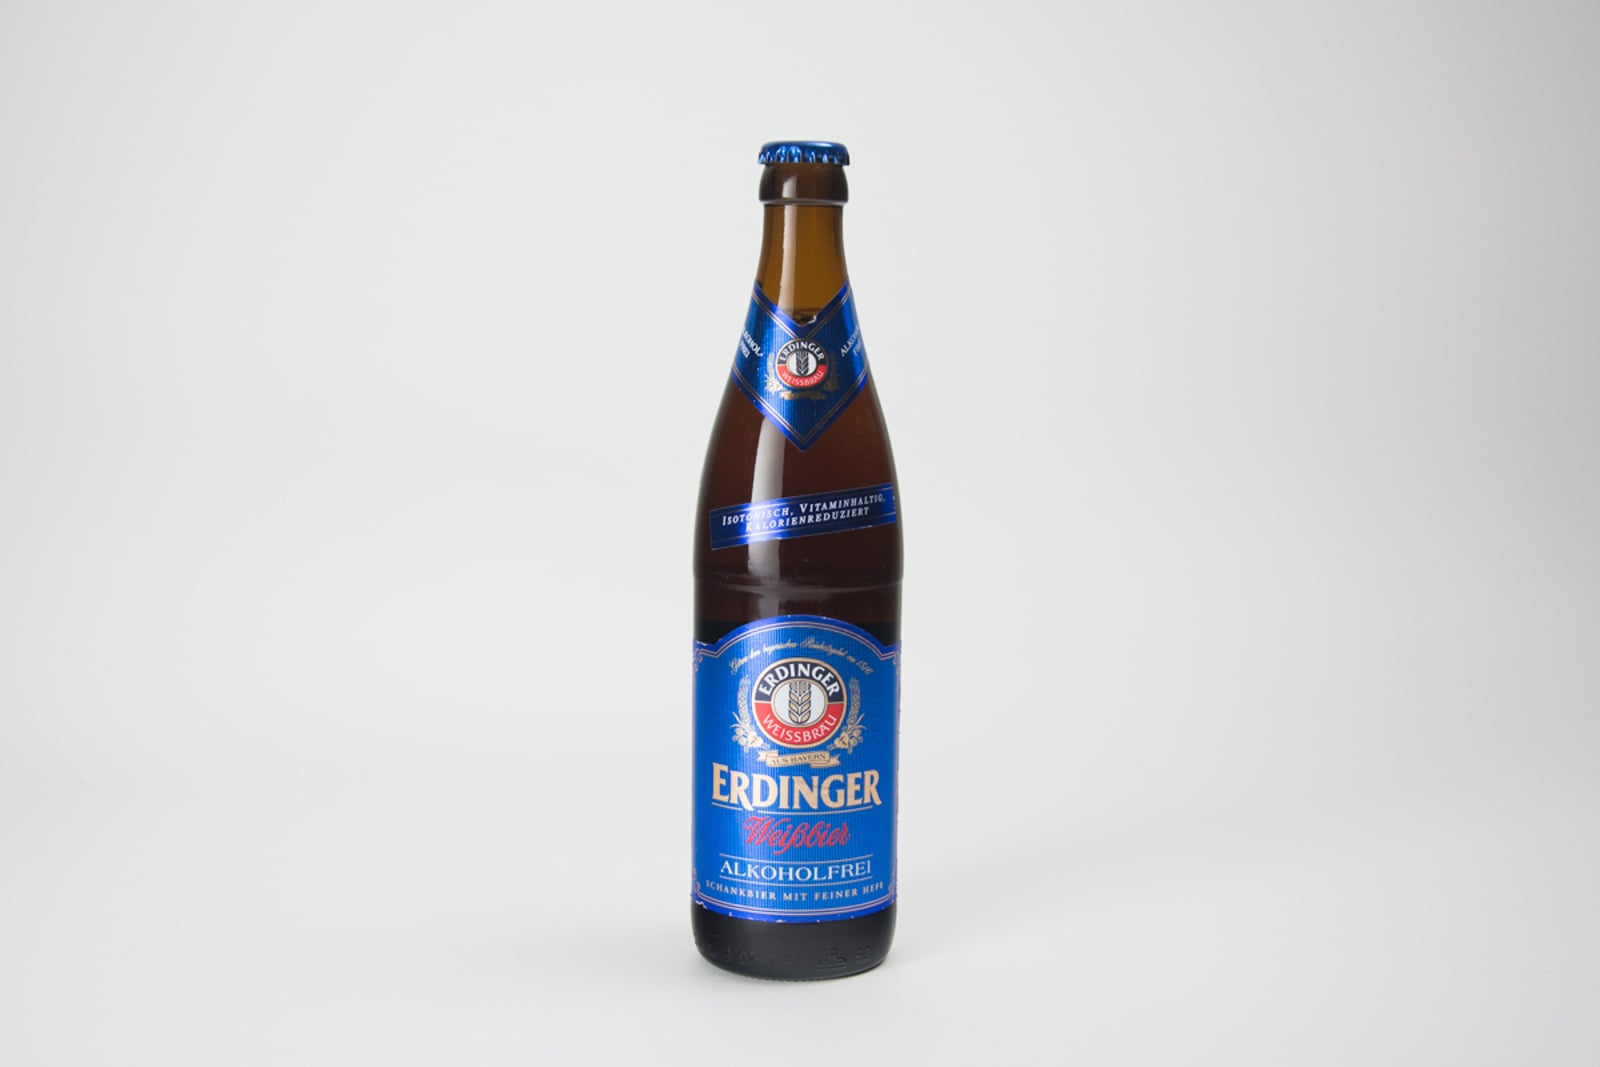 Erdinger Weißbier ALKOHOLFREI Beer Bottle, 50 cl